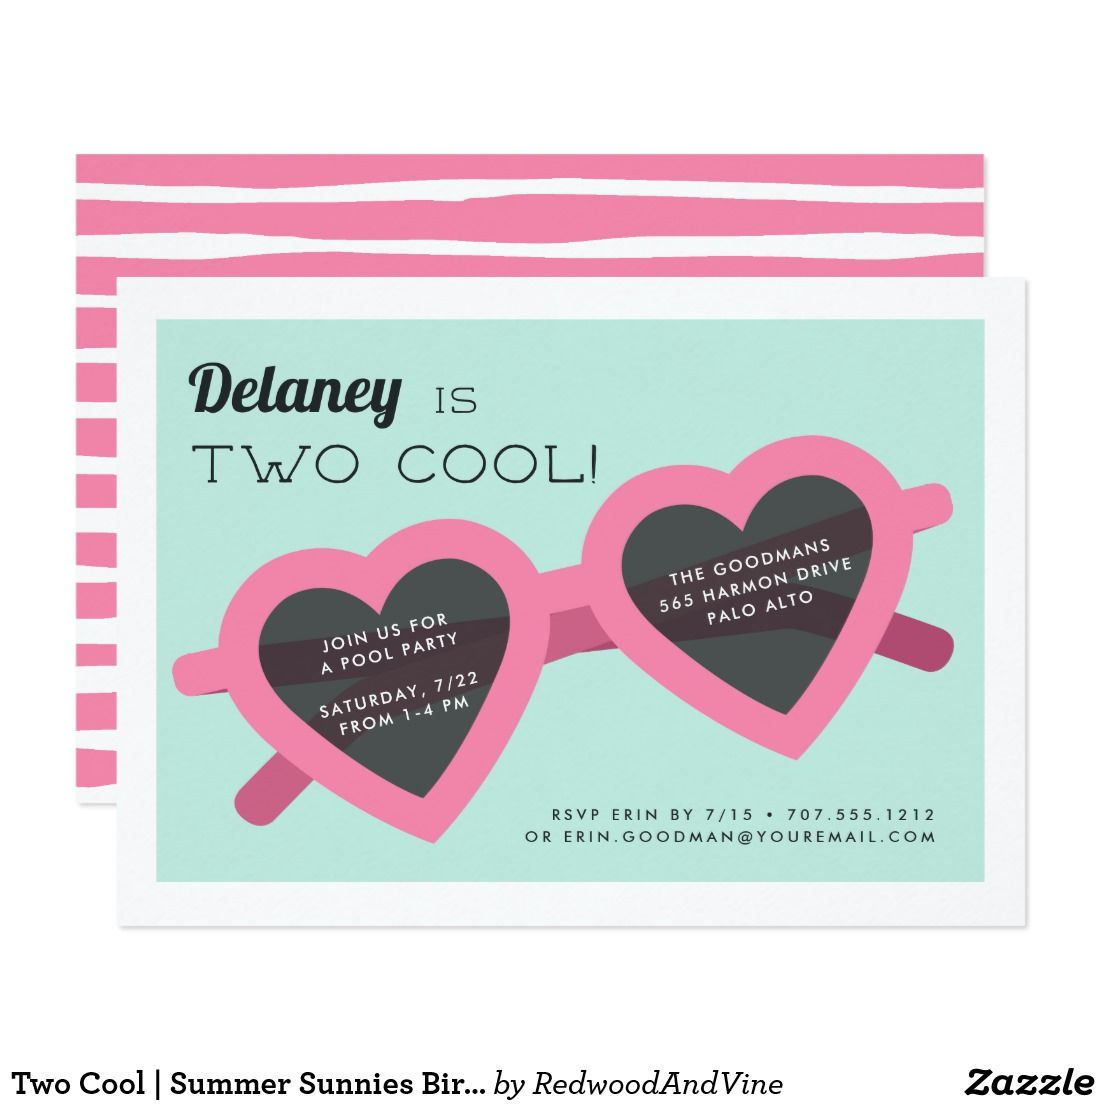 Two cool summer sunnies birthday party invite happy birthday two cool summer sunnies birthday party invite adorable party invitations for your little ones summer stopboris Images